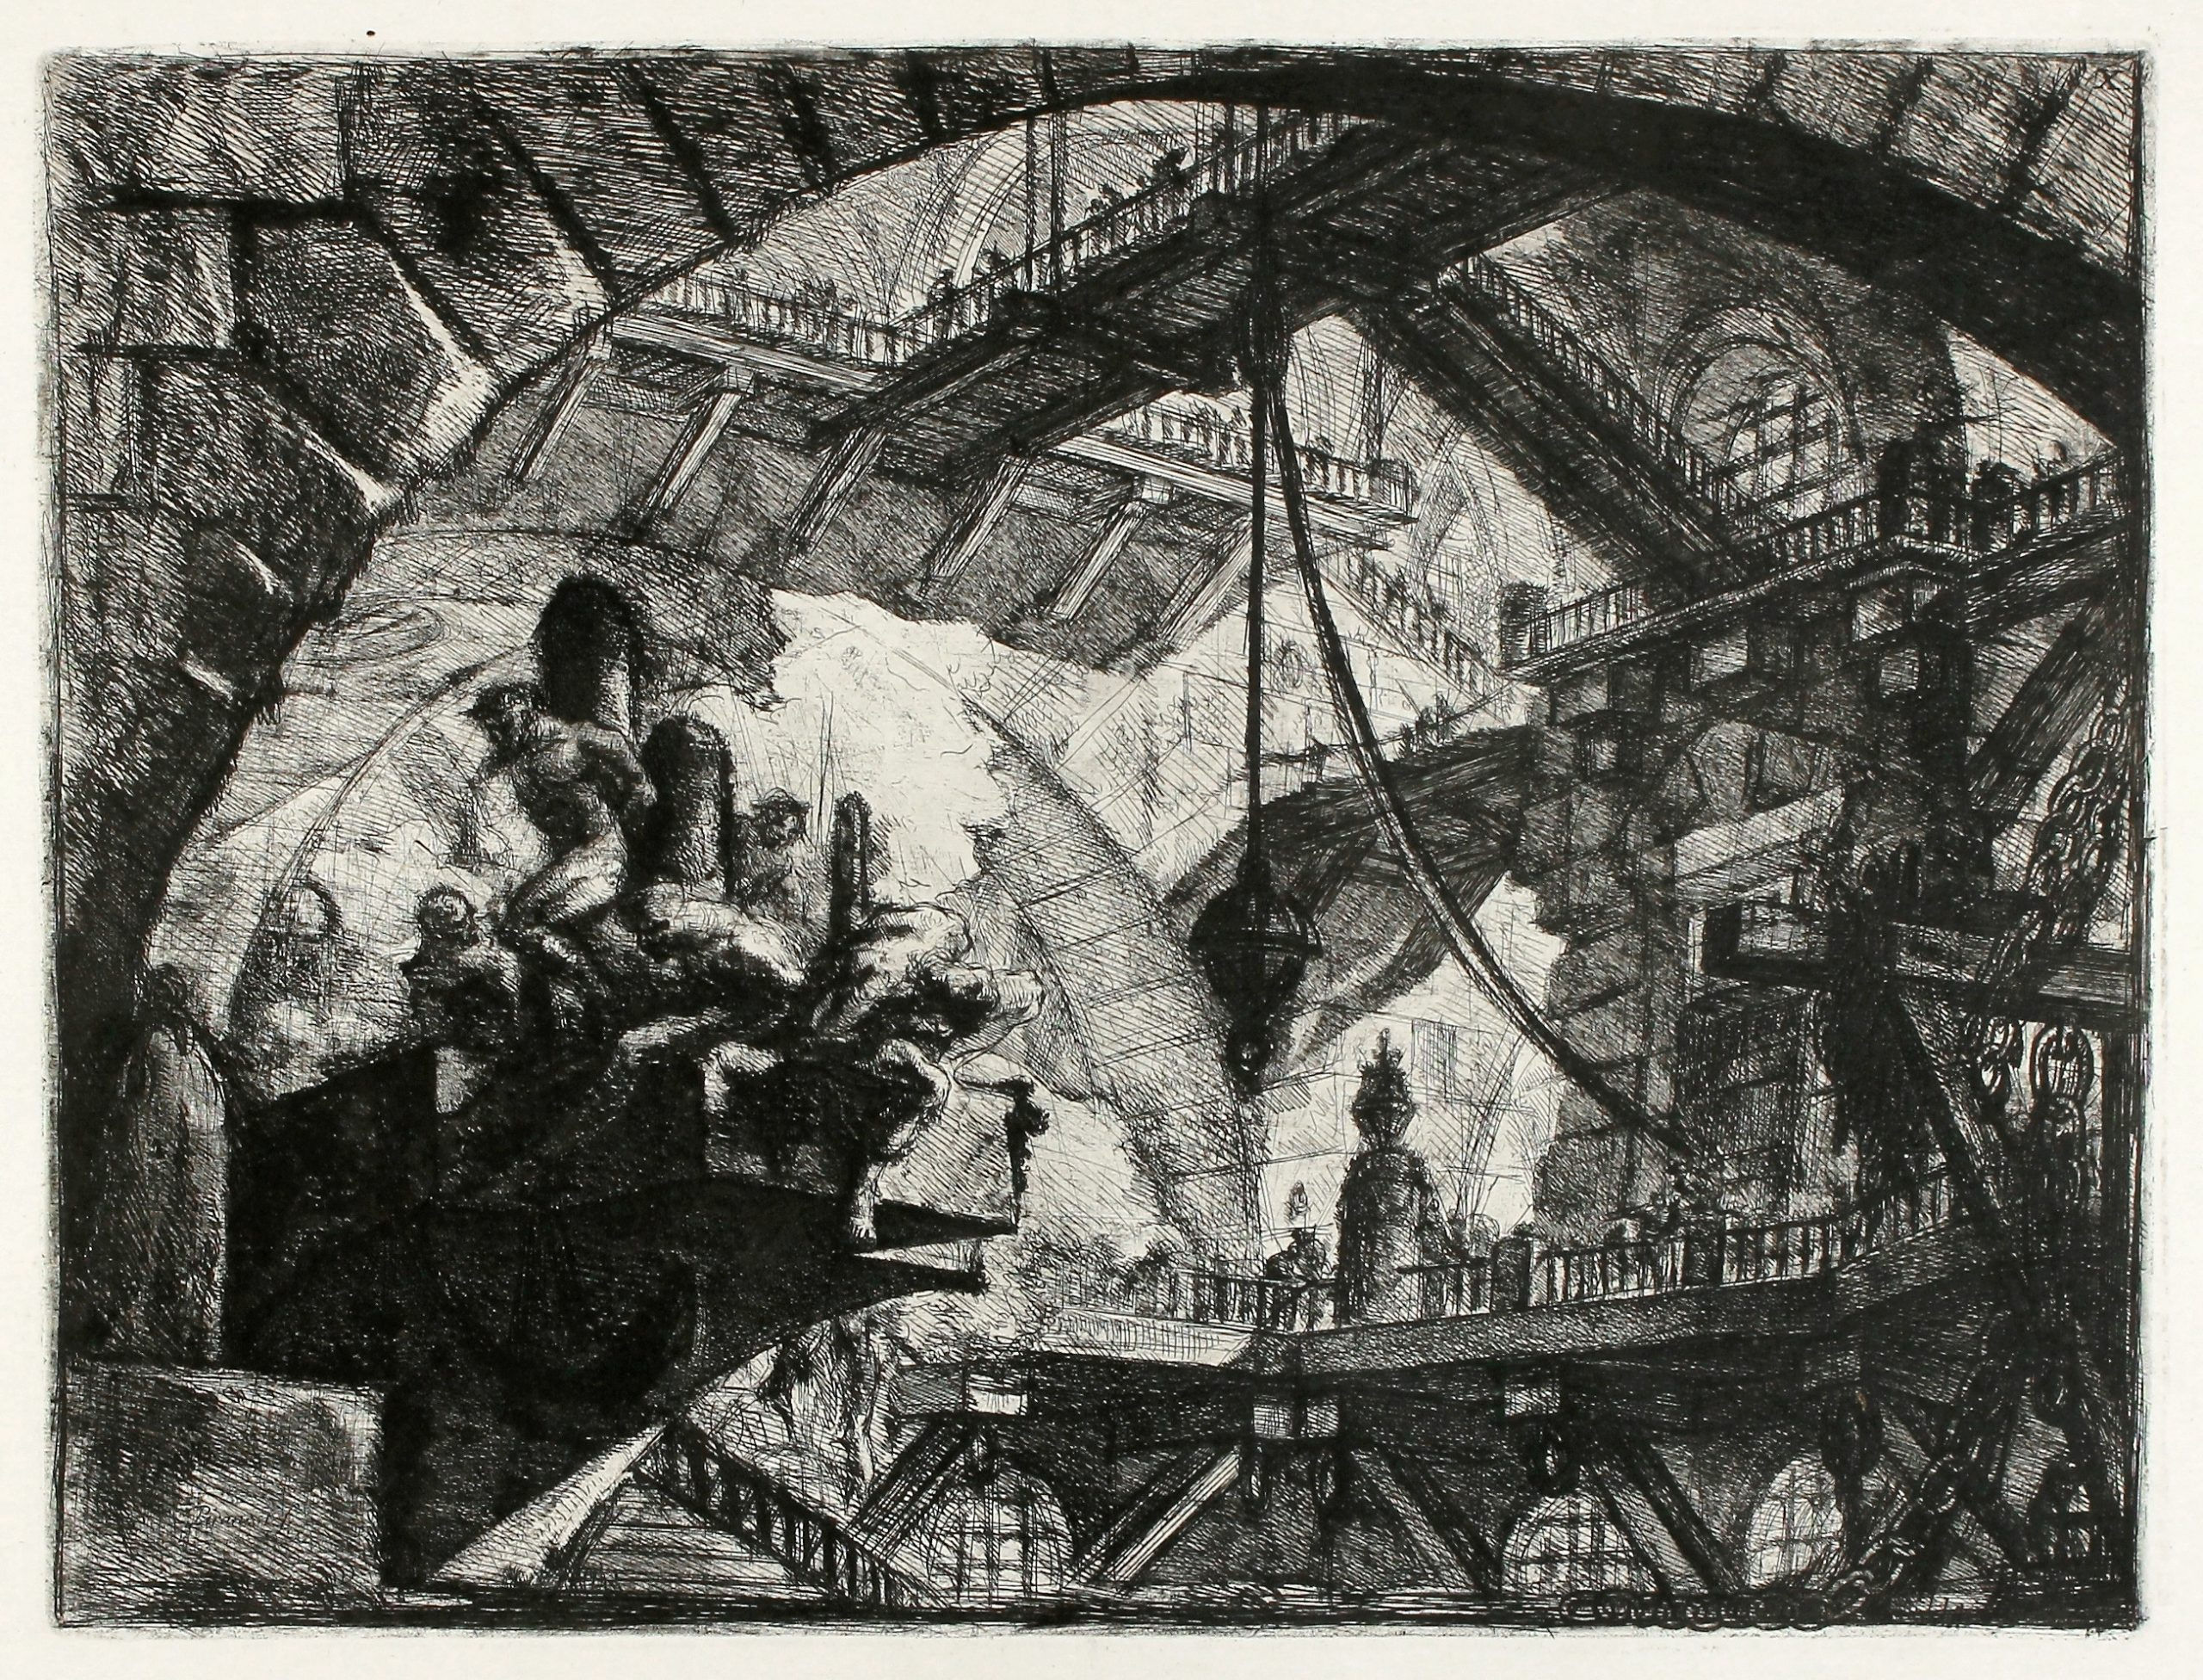 Prisoners On A Projecting Platform (Carceri d'Invenzione X) by Giovanni Battista Piranesi